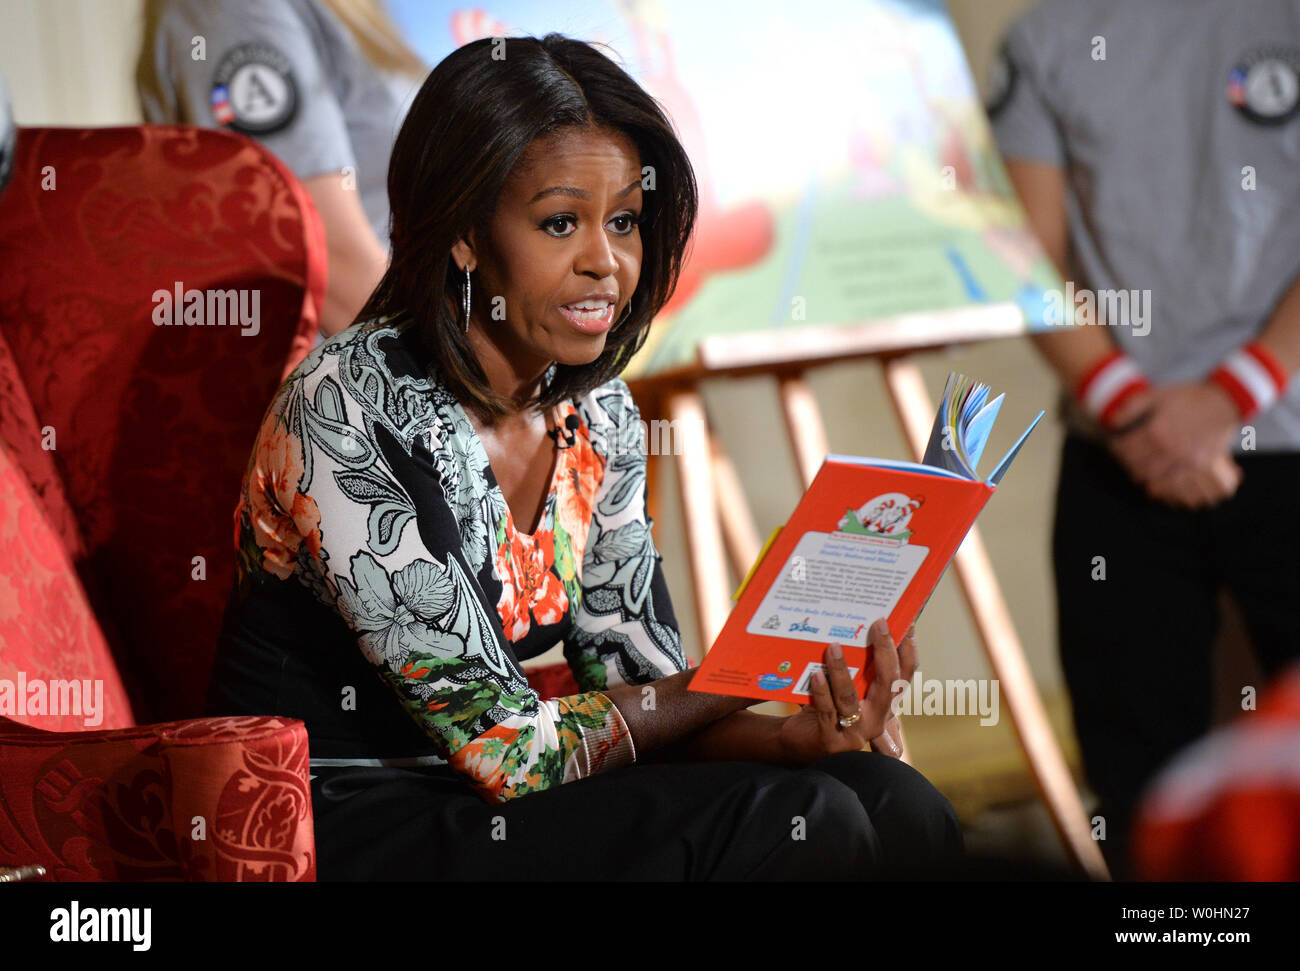 First Lady Michelle Obama reads Dr. Seuss's book, 'Oh, The Things You Can Do That Are Good for You: All About Staying Healthy' to a group of school children in the East Room at the White House in Washington, D.C. on January 21, 2015. The event was part of the First Lady's Let's Move! initiative to inform children about making health life decisions and staying active. Photo by Kevin Dietsch/UPI - Stock Image